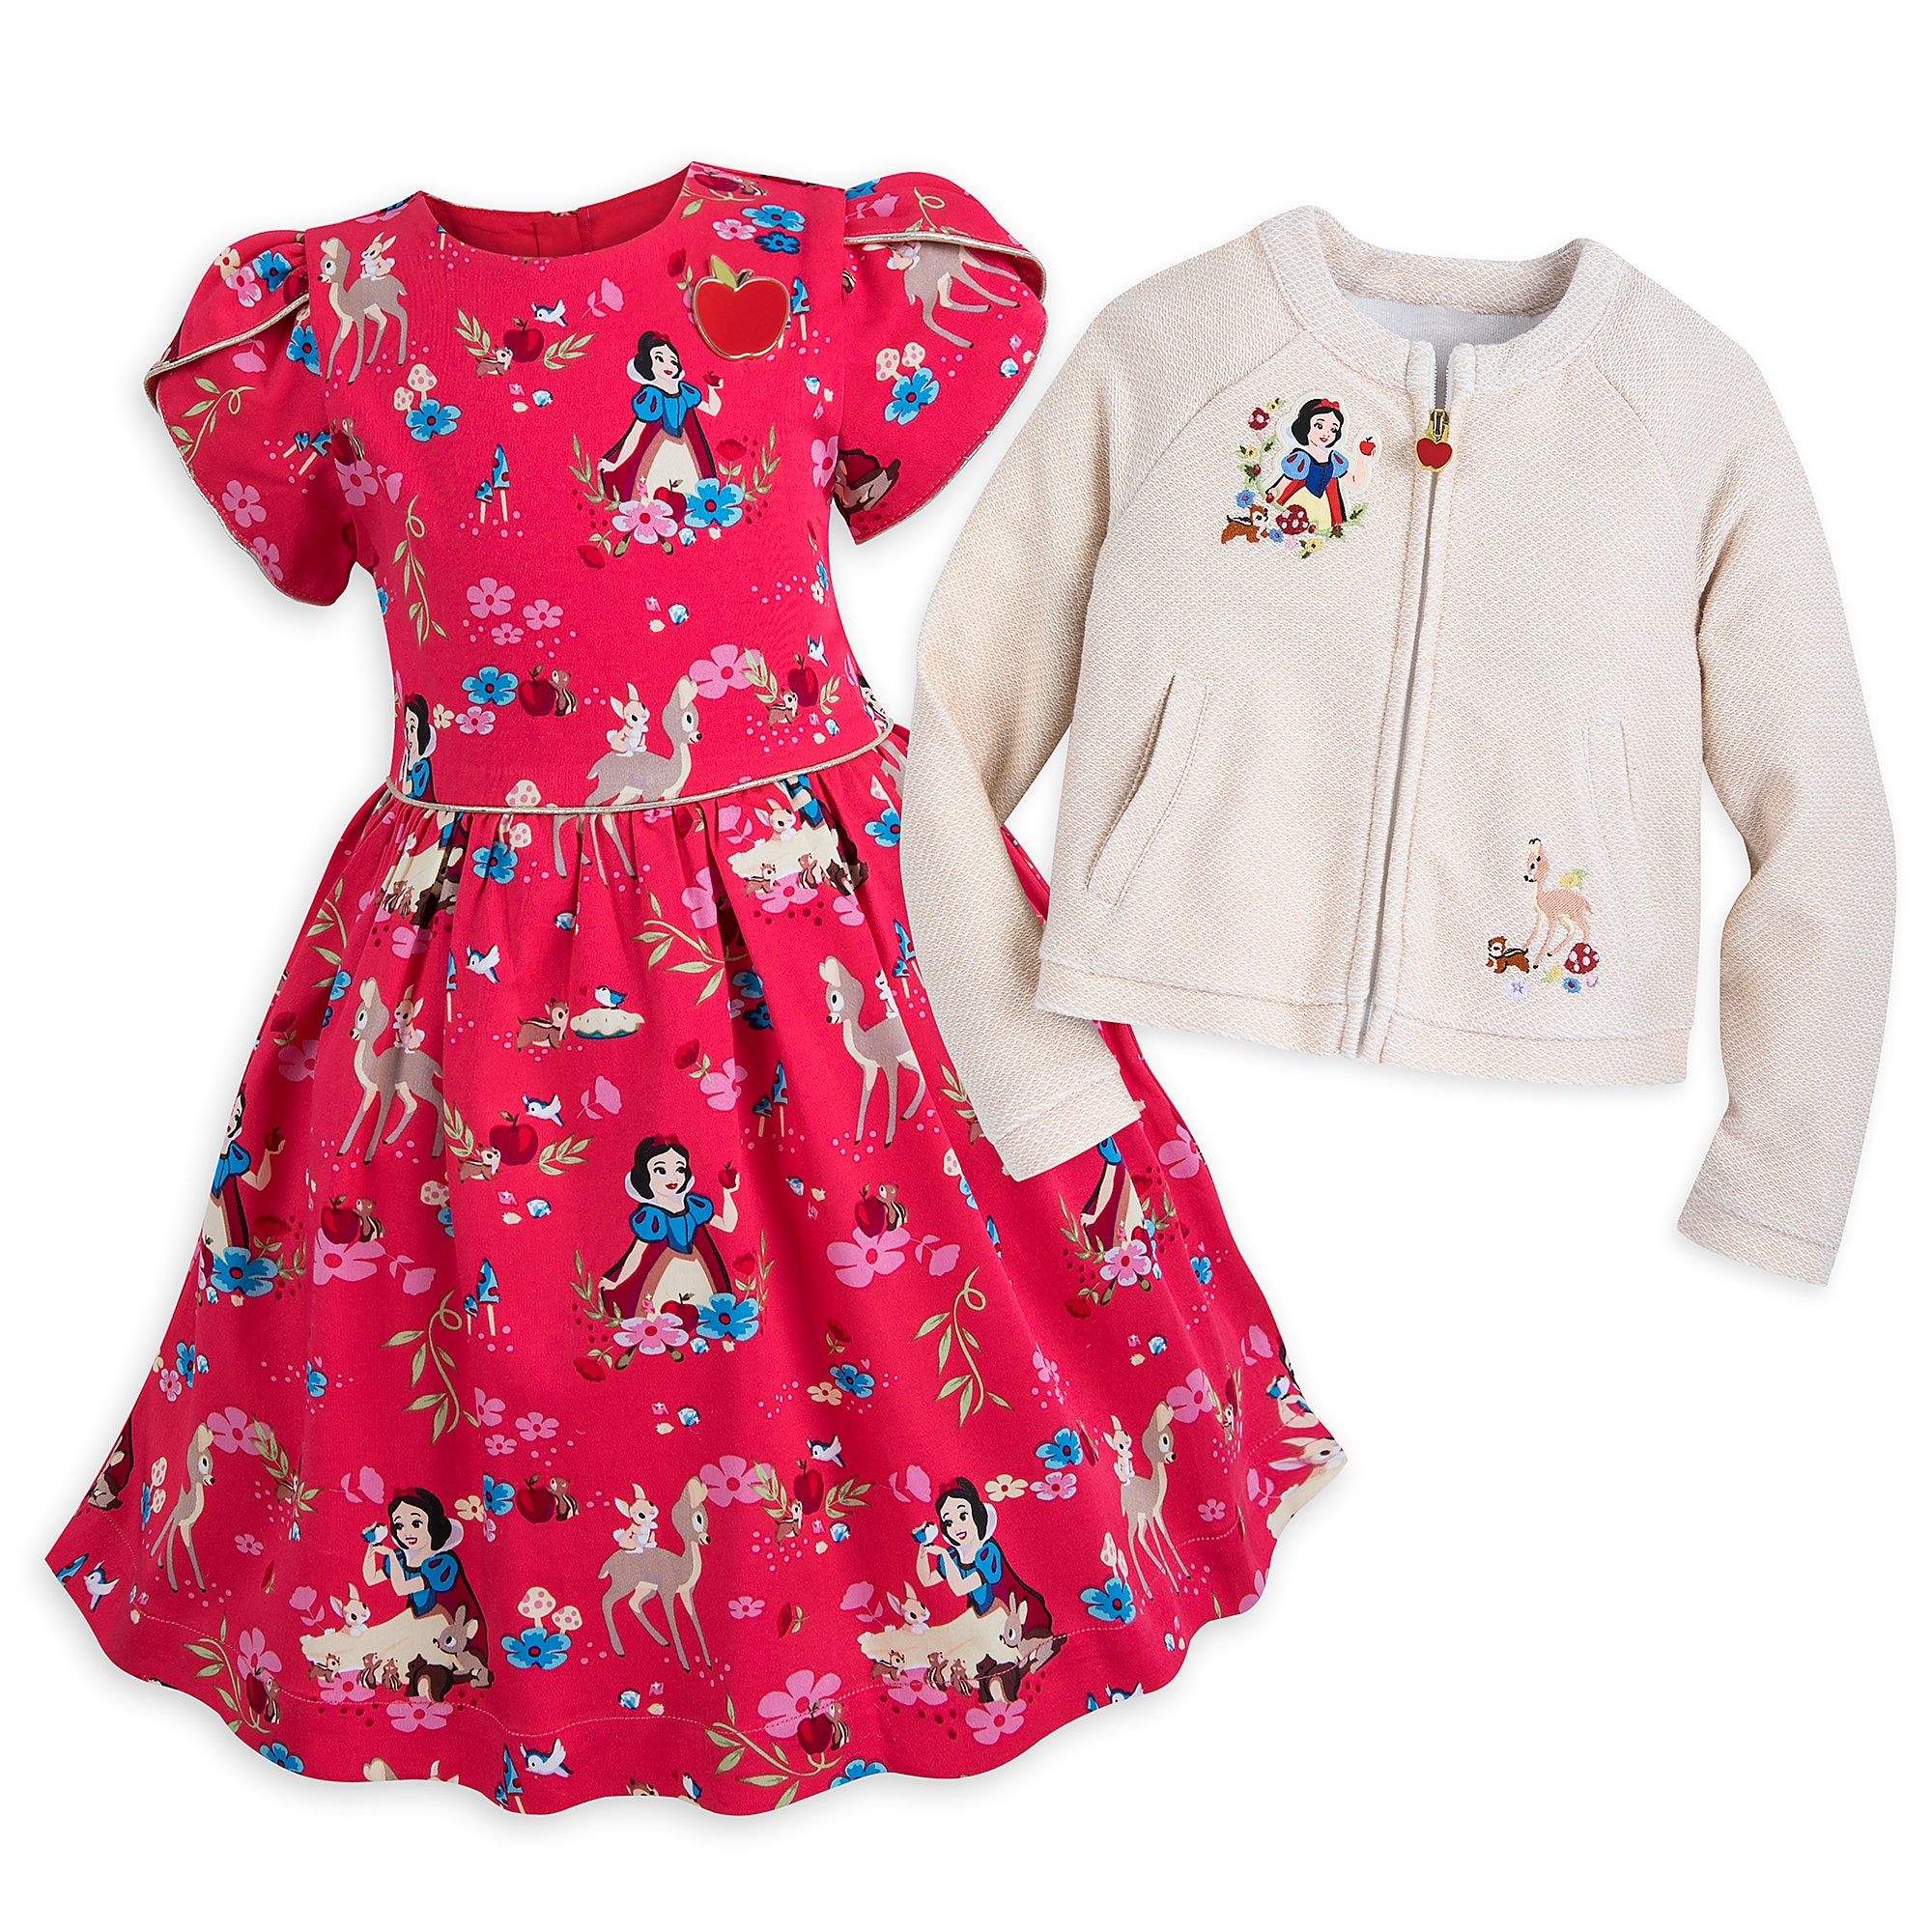 Snow White Fashion Collection for Girls